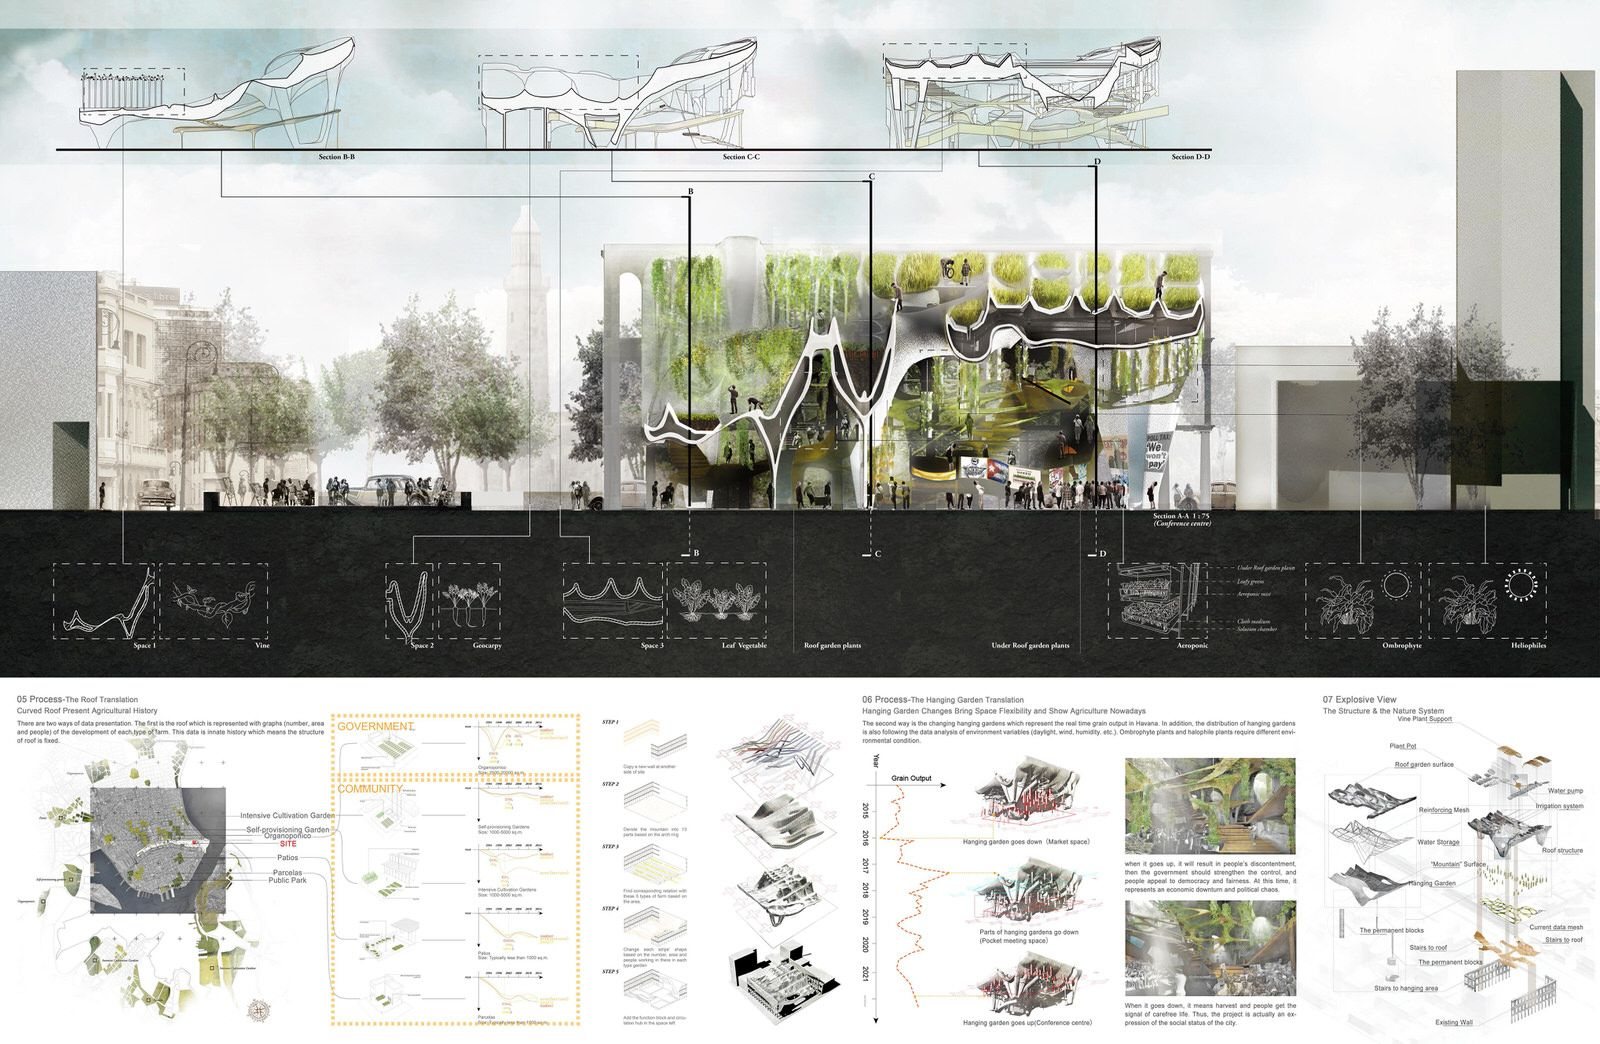 Winning entries for d3 Natural Systems 2015  Third Prize: 'The Guildhall Garden' by Li Jingsi, Yang Fuyuan | CHINA